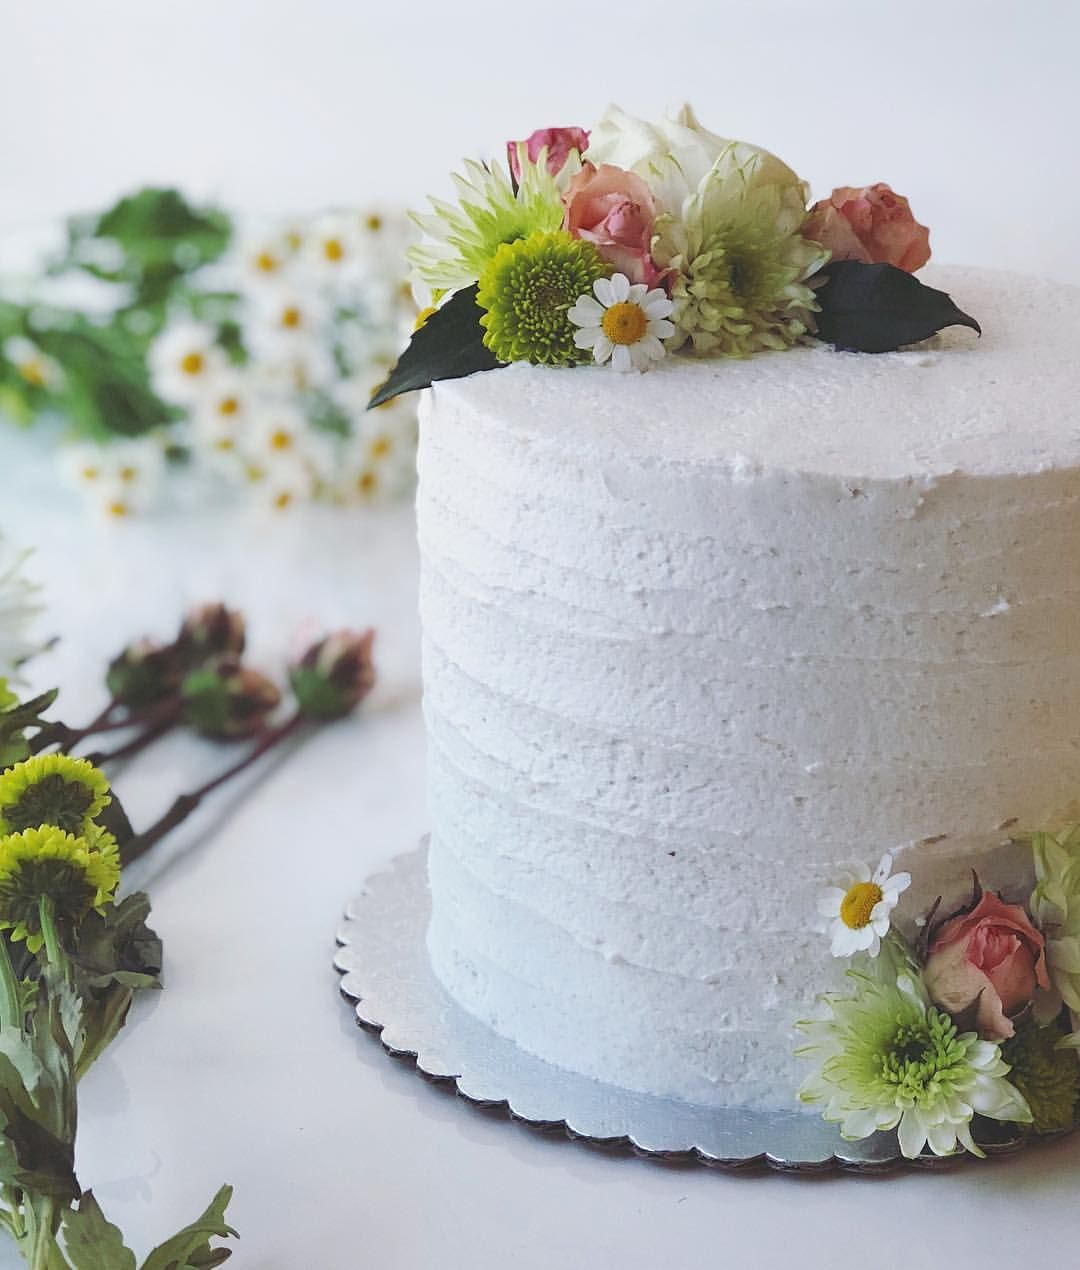 Busiest week this year with a record number of cake orders